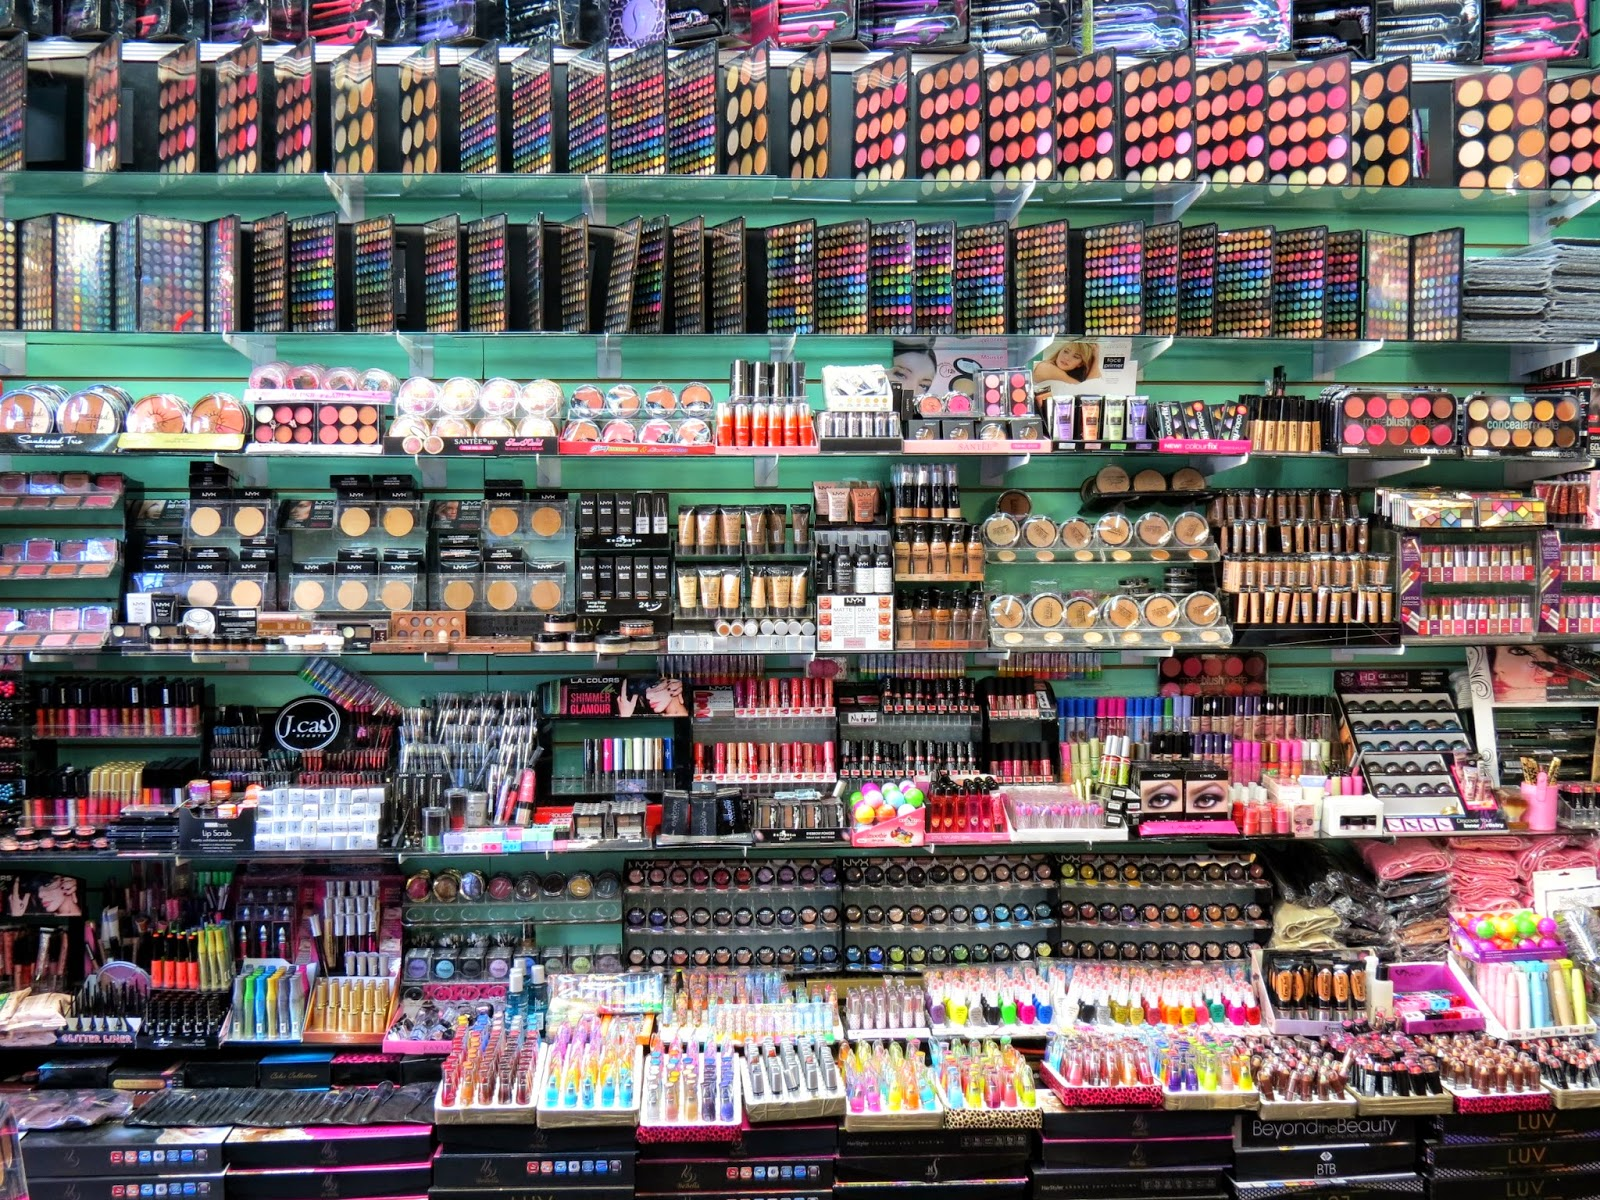 The Santee Alley Makeup and Beauty Supplies at Wholesale